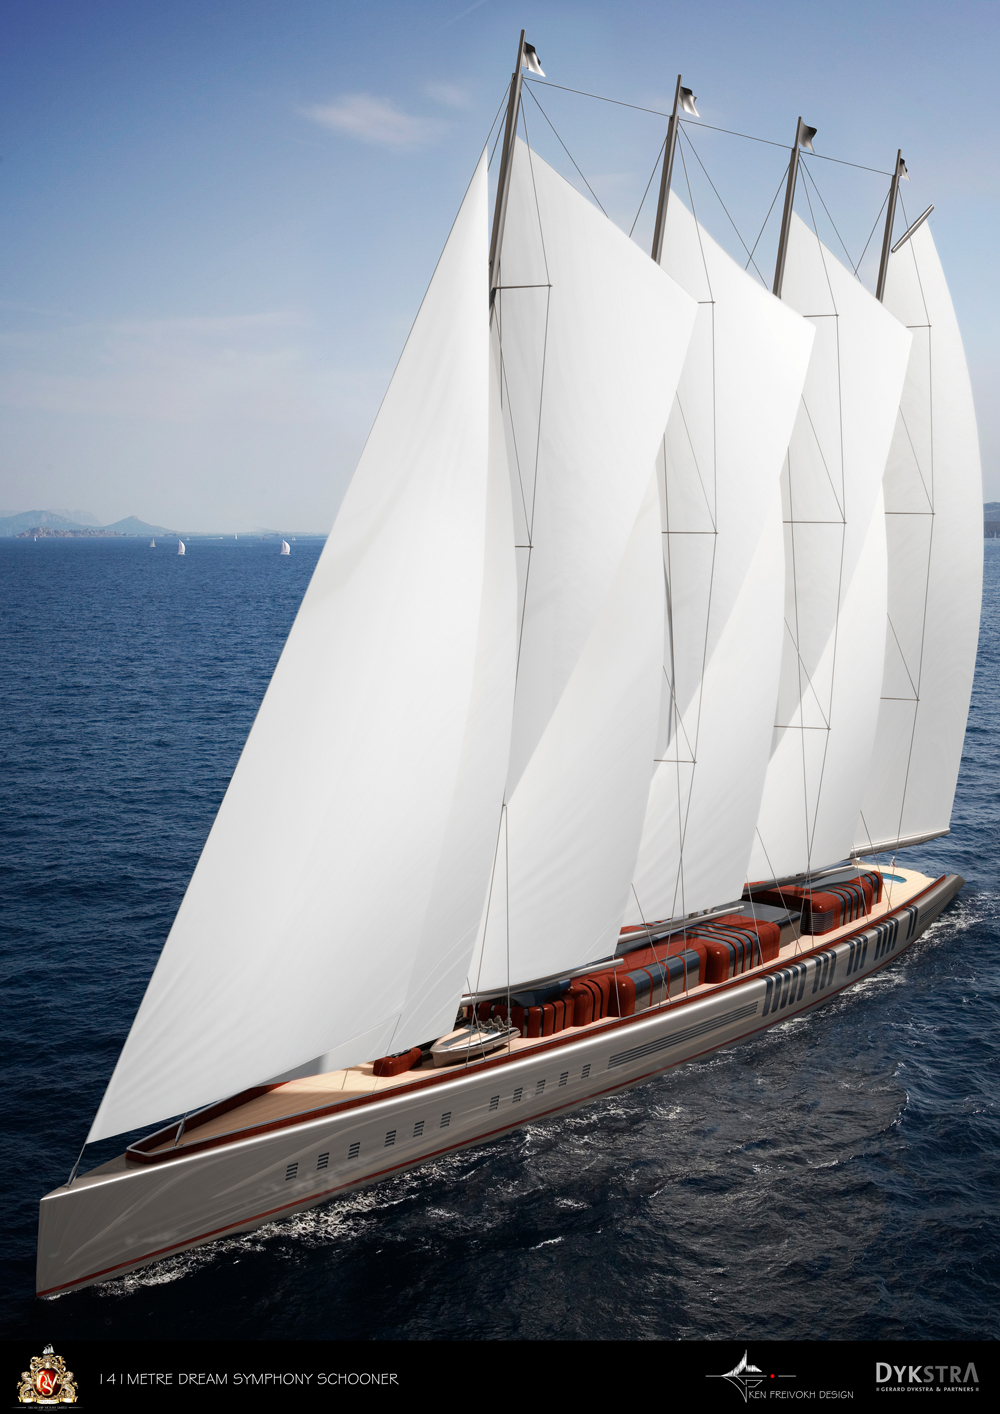 SP High Modulus Wins Contract To Engineer Superyacht Dream Symphony The Largest Private Sailing Yacht Ever Built